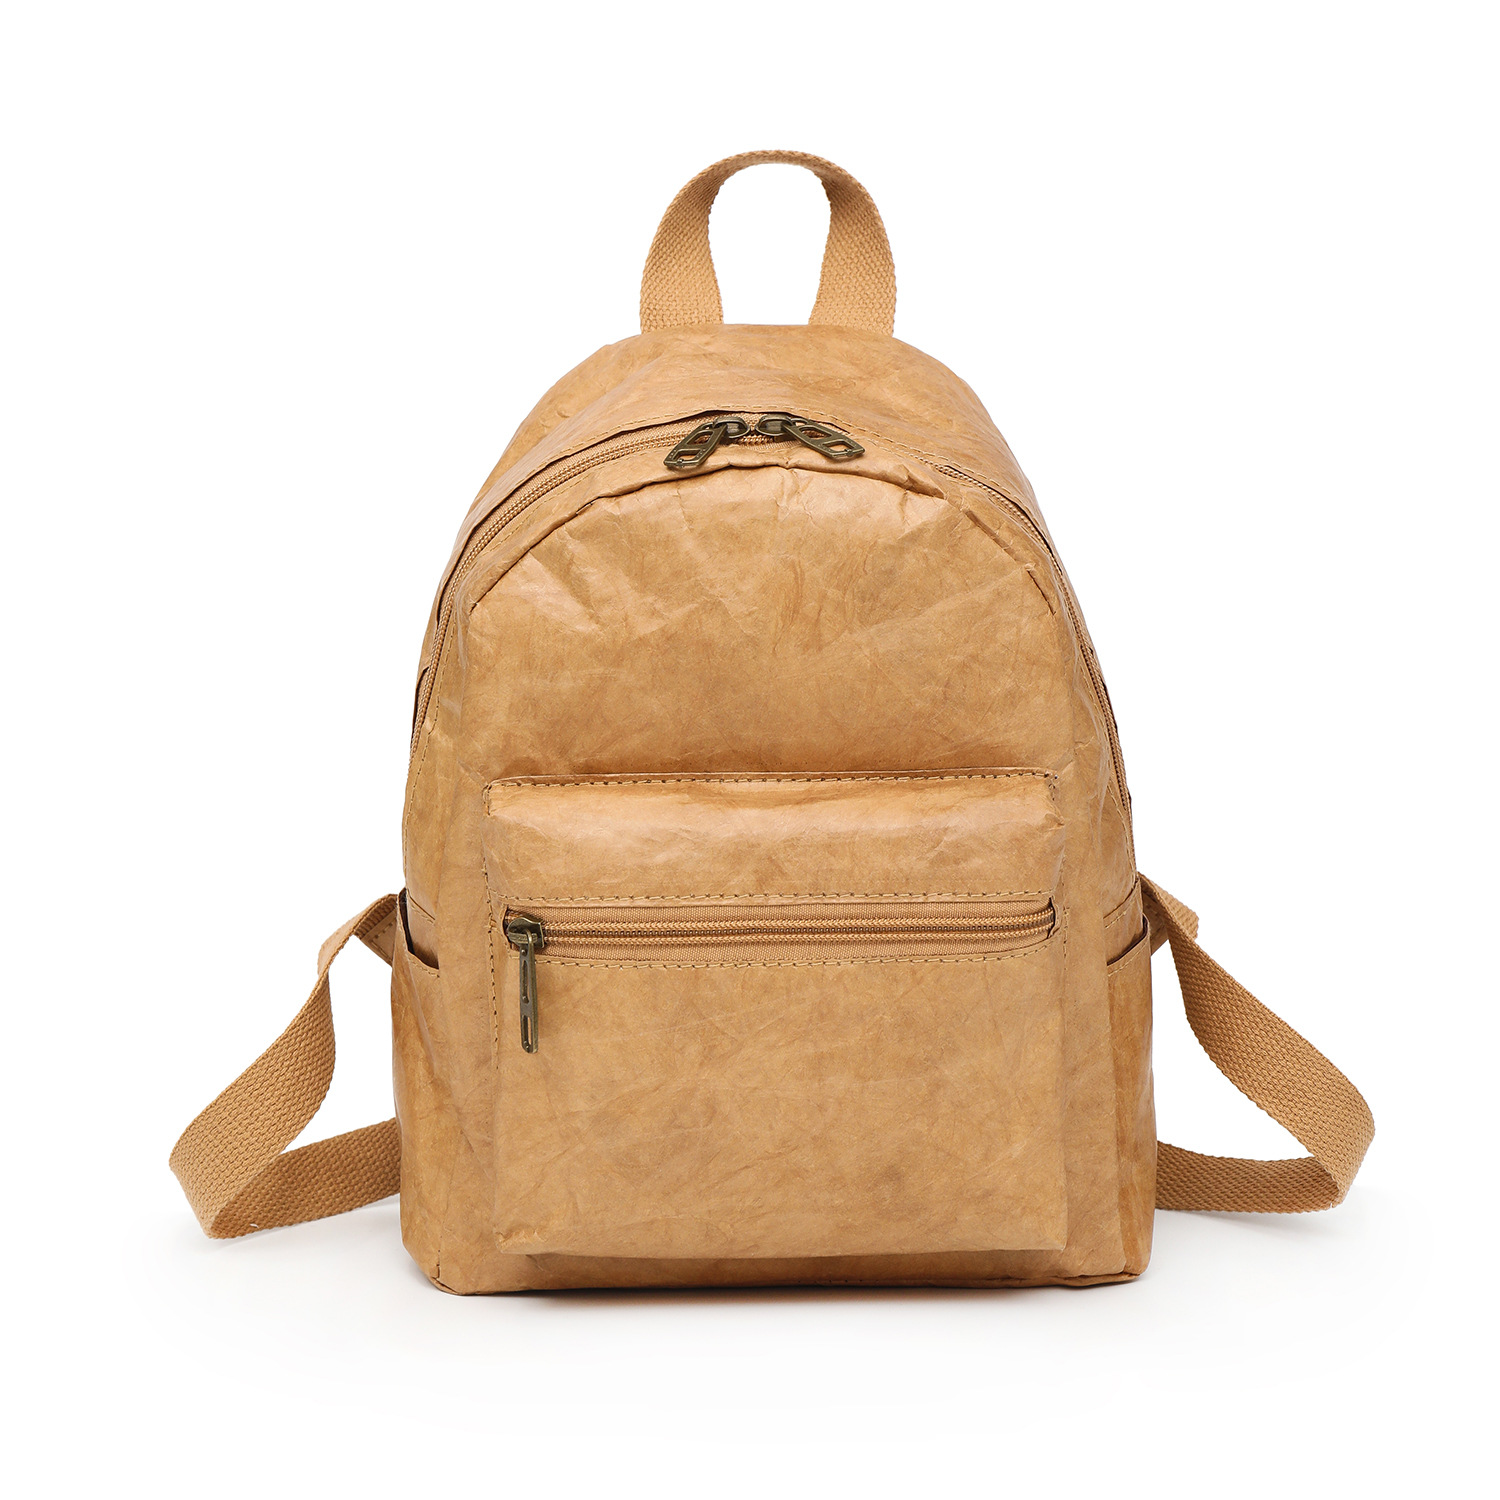 PUBGS Unisex Backpack 2019 NEW Kraft Paper Bag Foldable Decompressed Washable Tear-resistant Environmental-friendly Women & Male